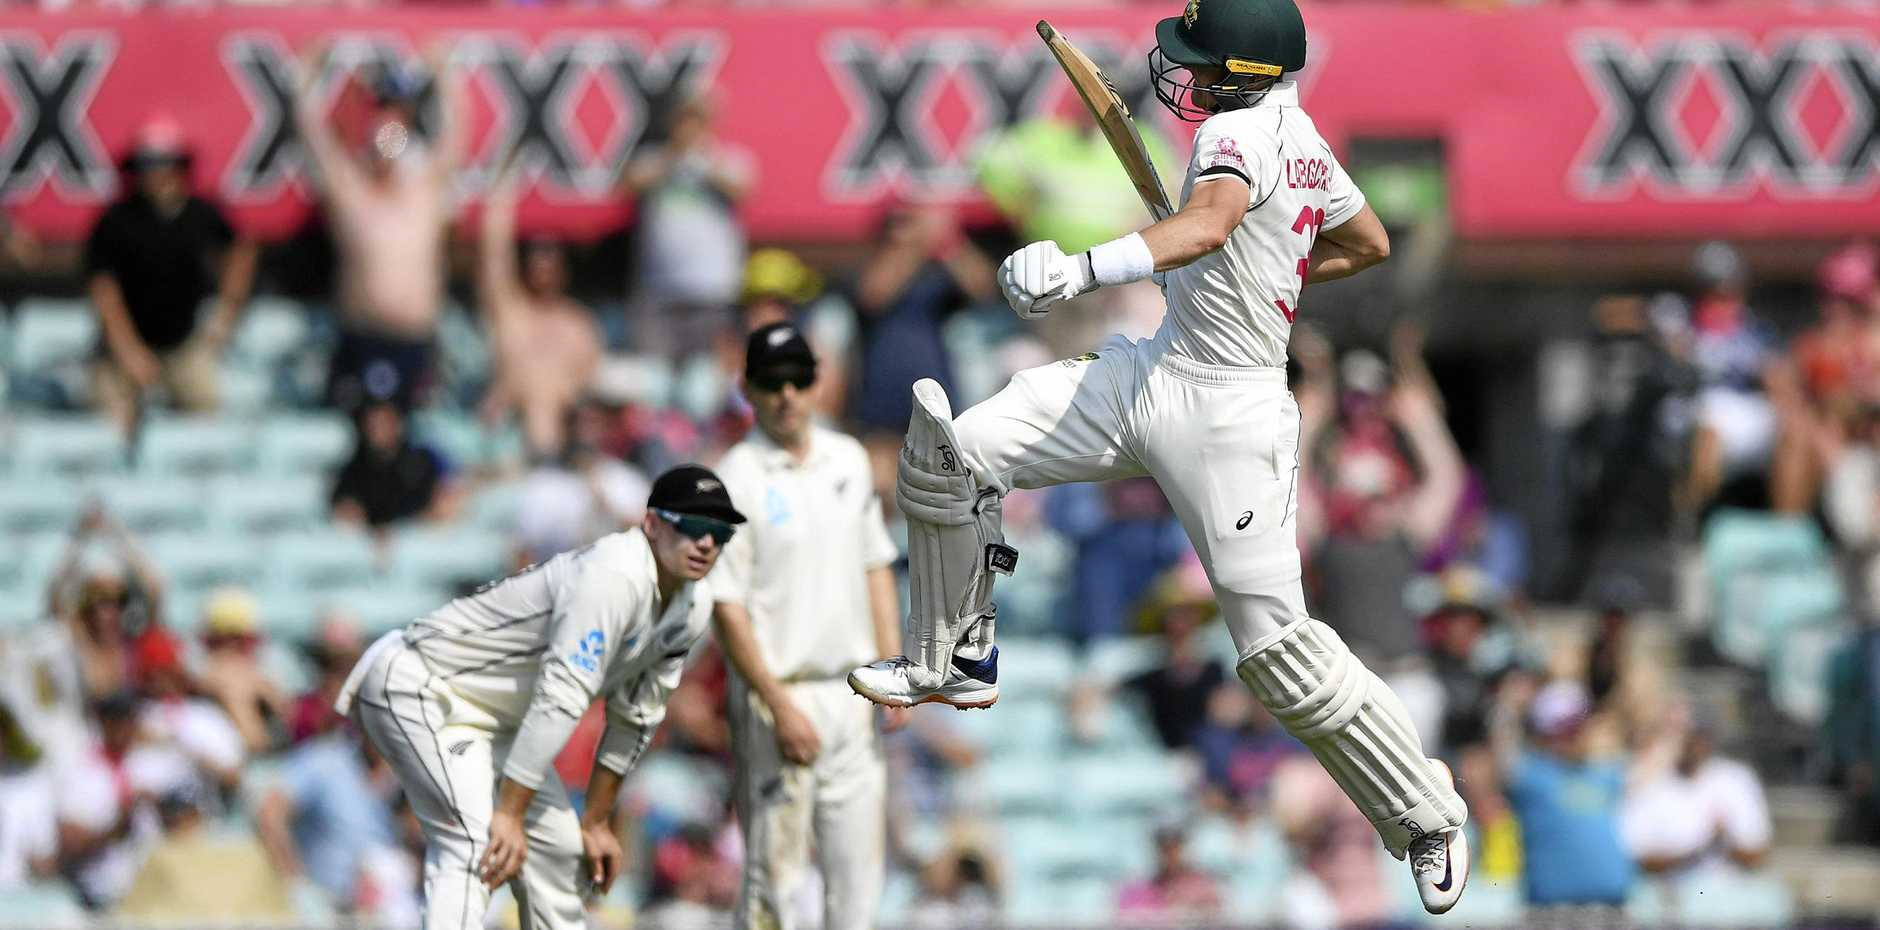 Marnus Labuschagne celebrates his century at the SCG on day one of the third Test between Australia and New Zealand. Picture: Andrew Cornaga/Photosport/AP